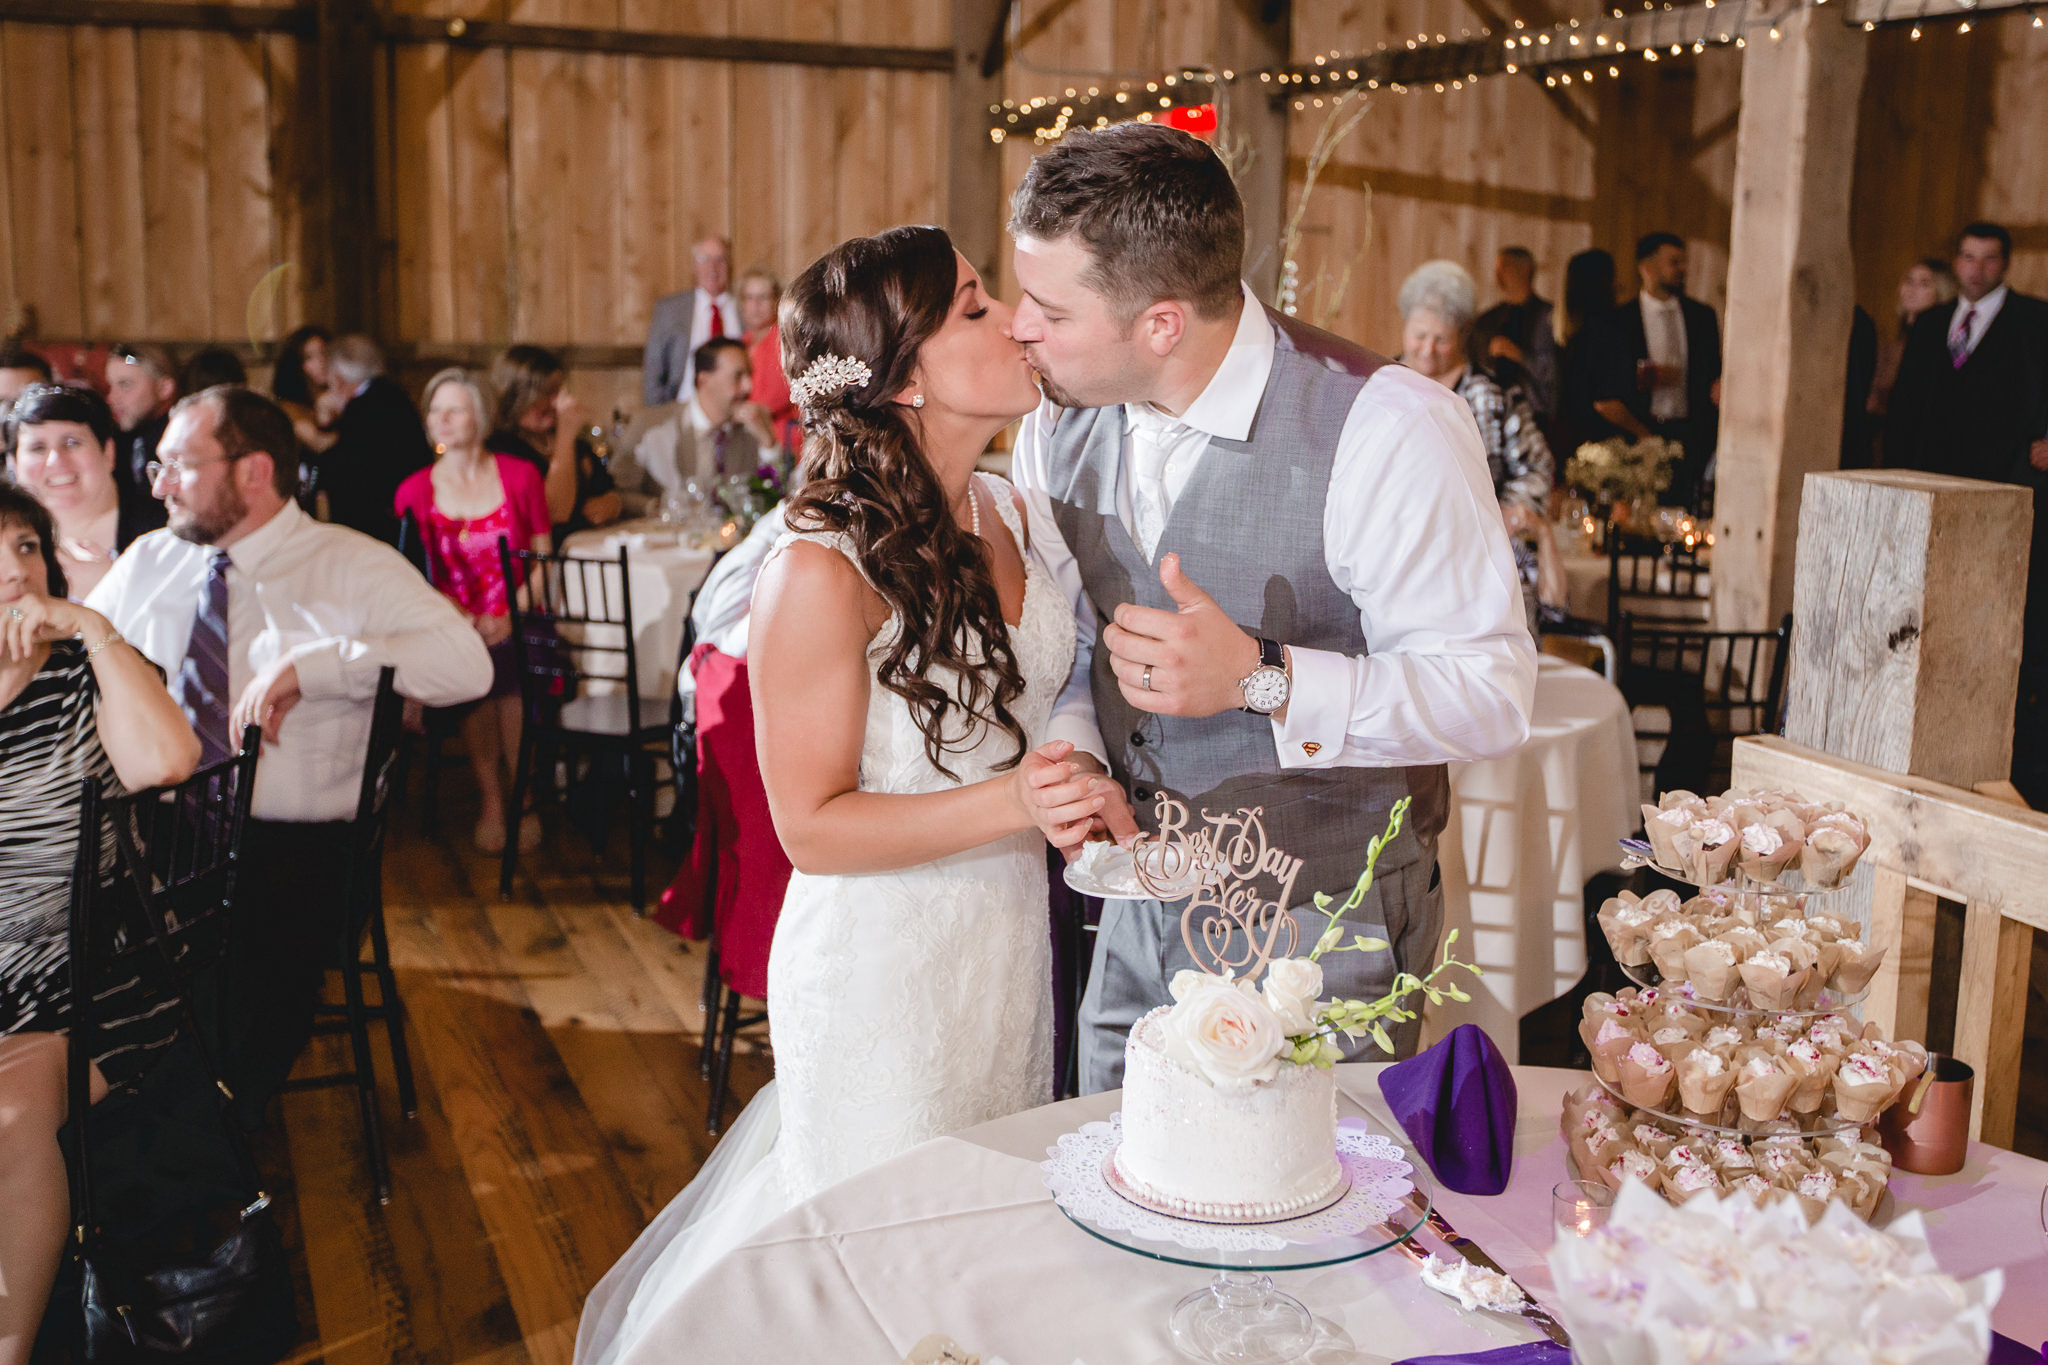 Bride and groom kiss after cutting cake at White Barn